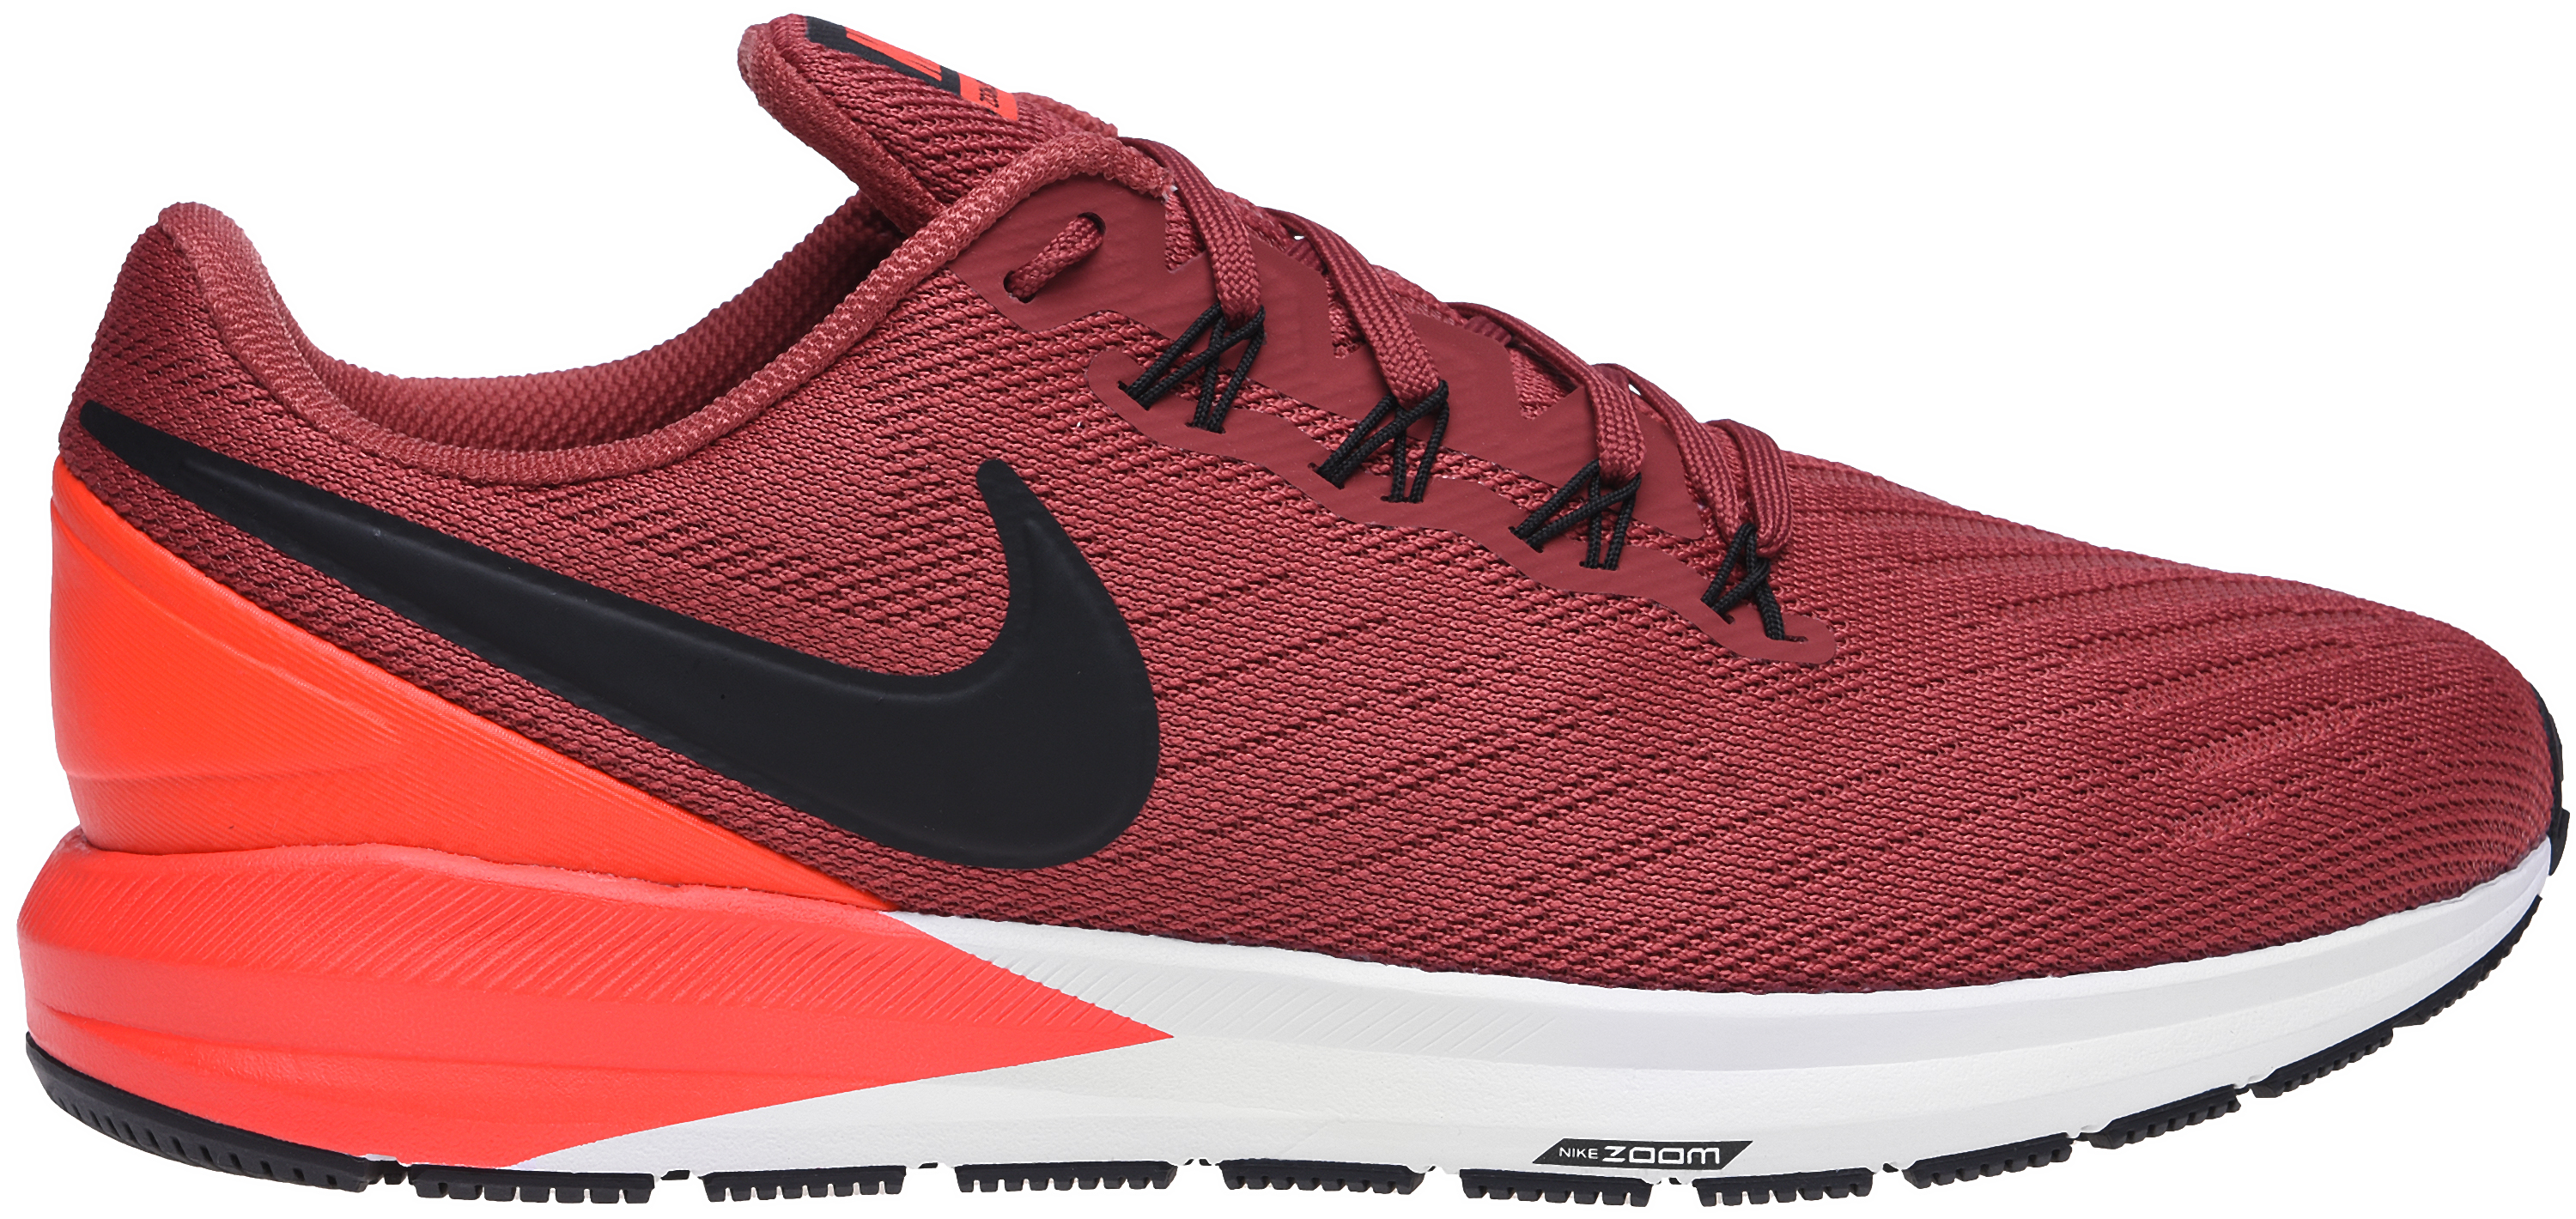 the best attitude ce9a5 d030a Кроссовки Nike Air Zoom Structure 22 AA1636-600 42.5 (10) 28 см Бордовые  (193145201057)